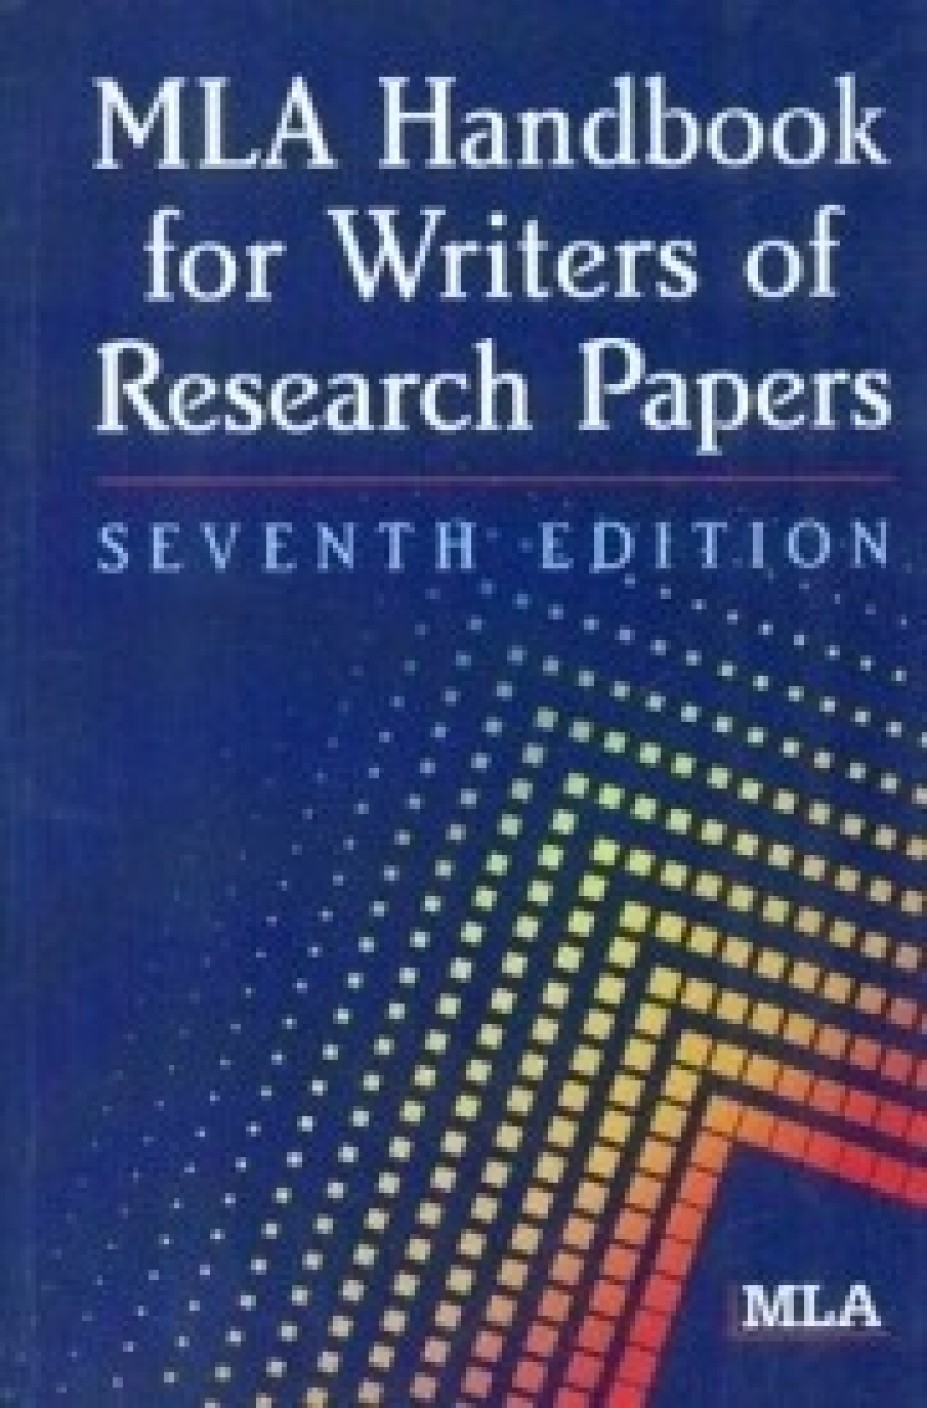 mla handbook for writers of research papers book Buy mla handbook for writers of research papers at walmartcom.